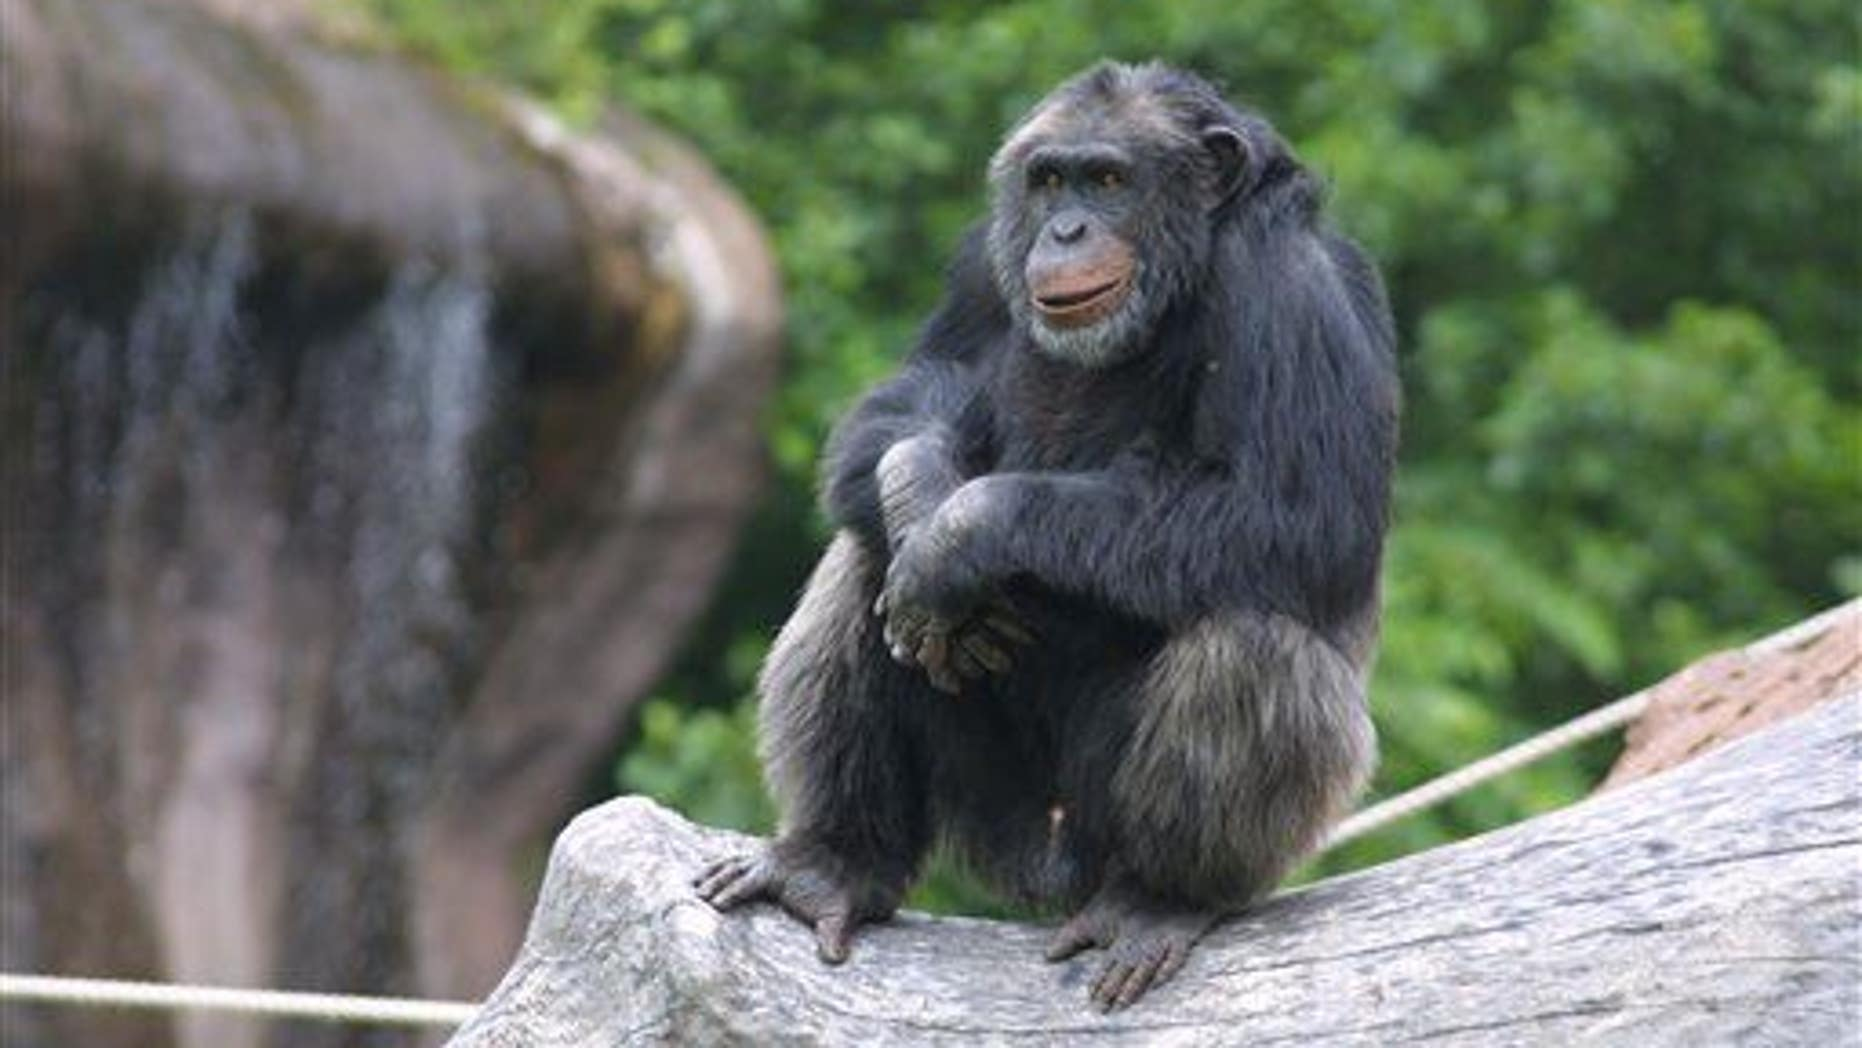 In this undated image released by Sweden's Furuvik Zoo, Santino the chimpanzee is seen in his enclosure at the zoo in Furuvik, Sweden.